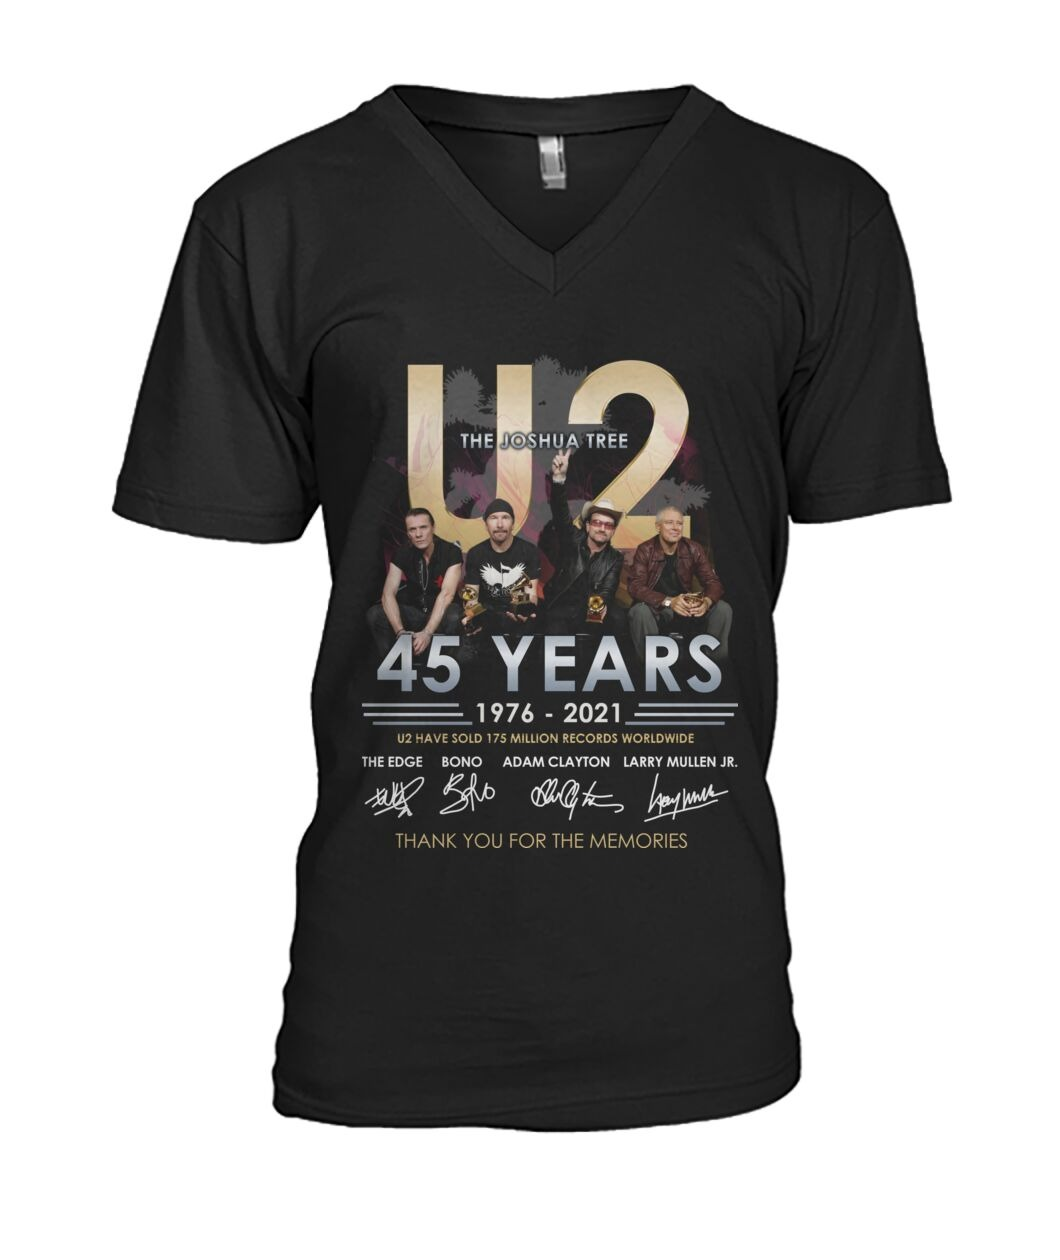 The joshua tree U2 45 years thank you for the memories v-neck